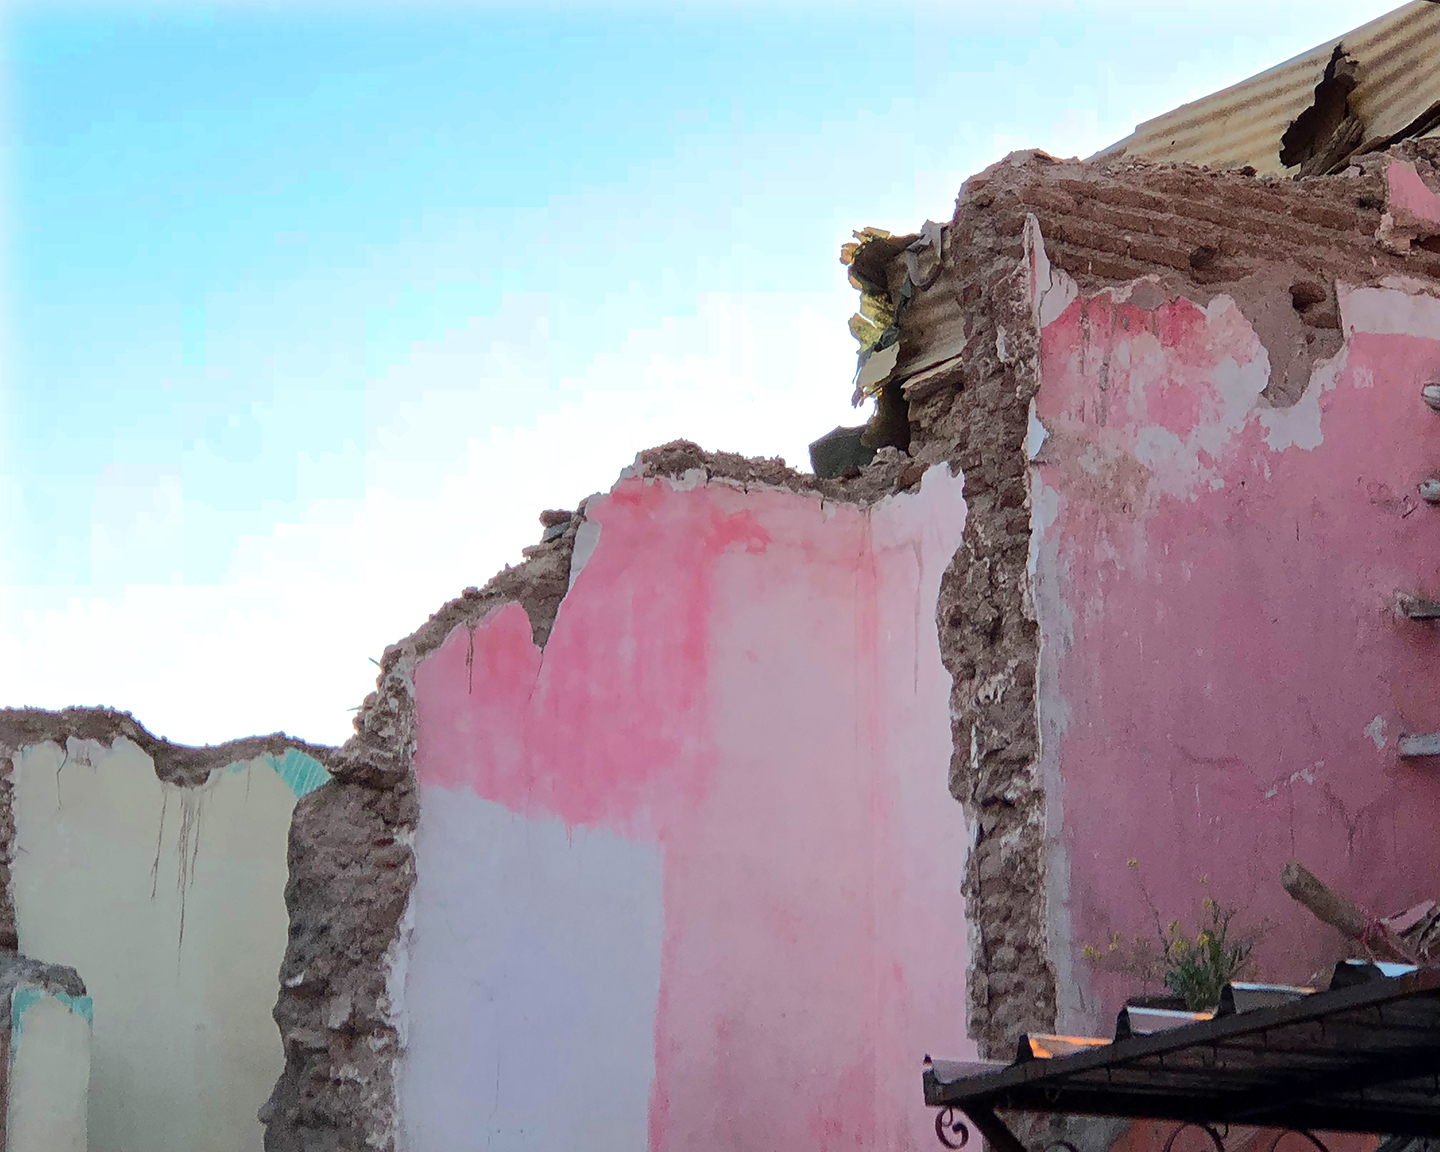 Pink Wall, Marrakesh